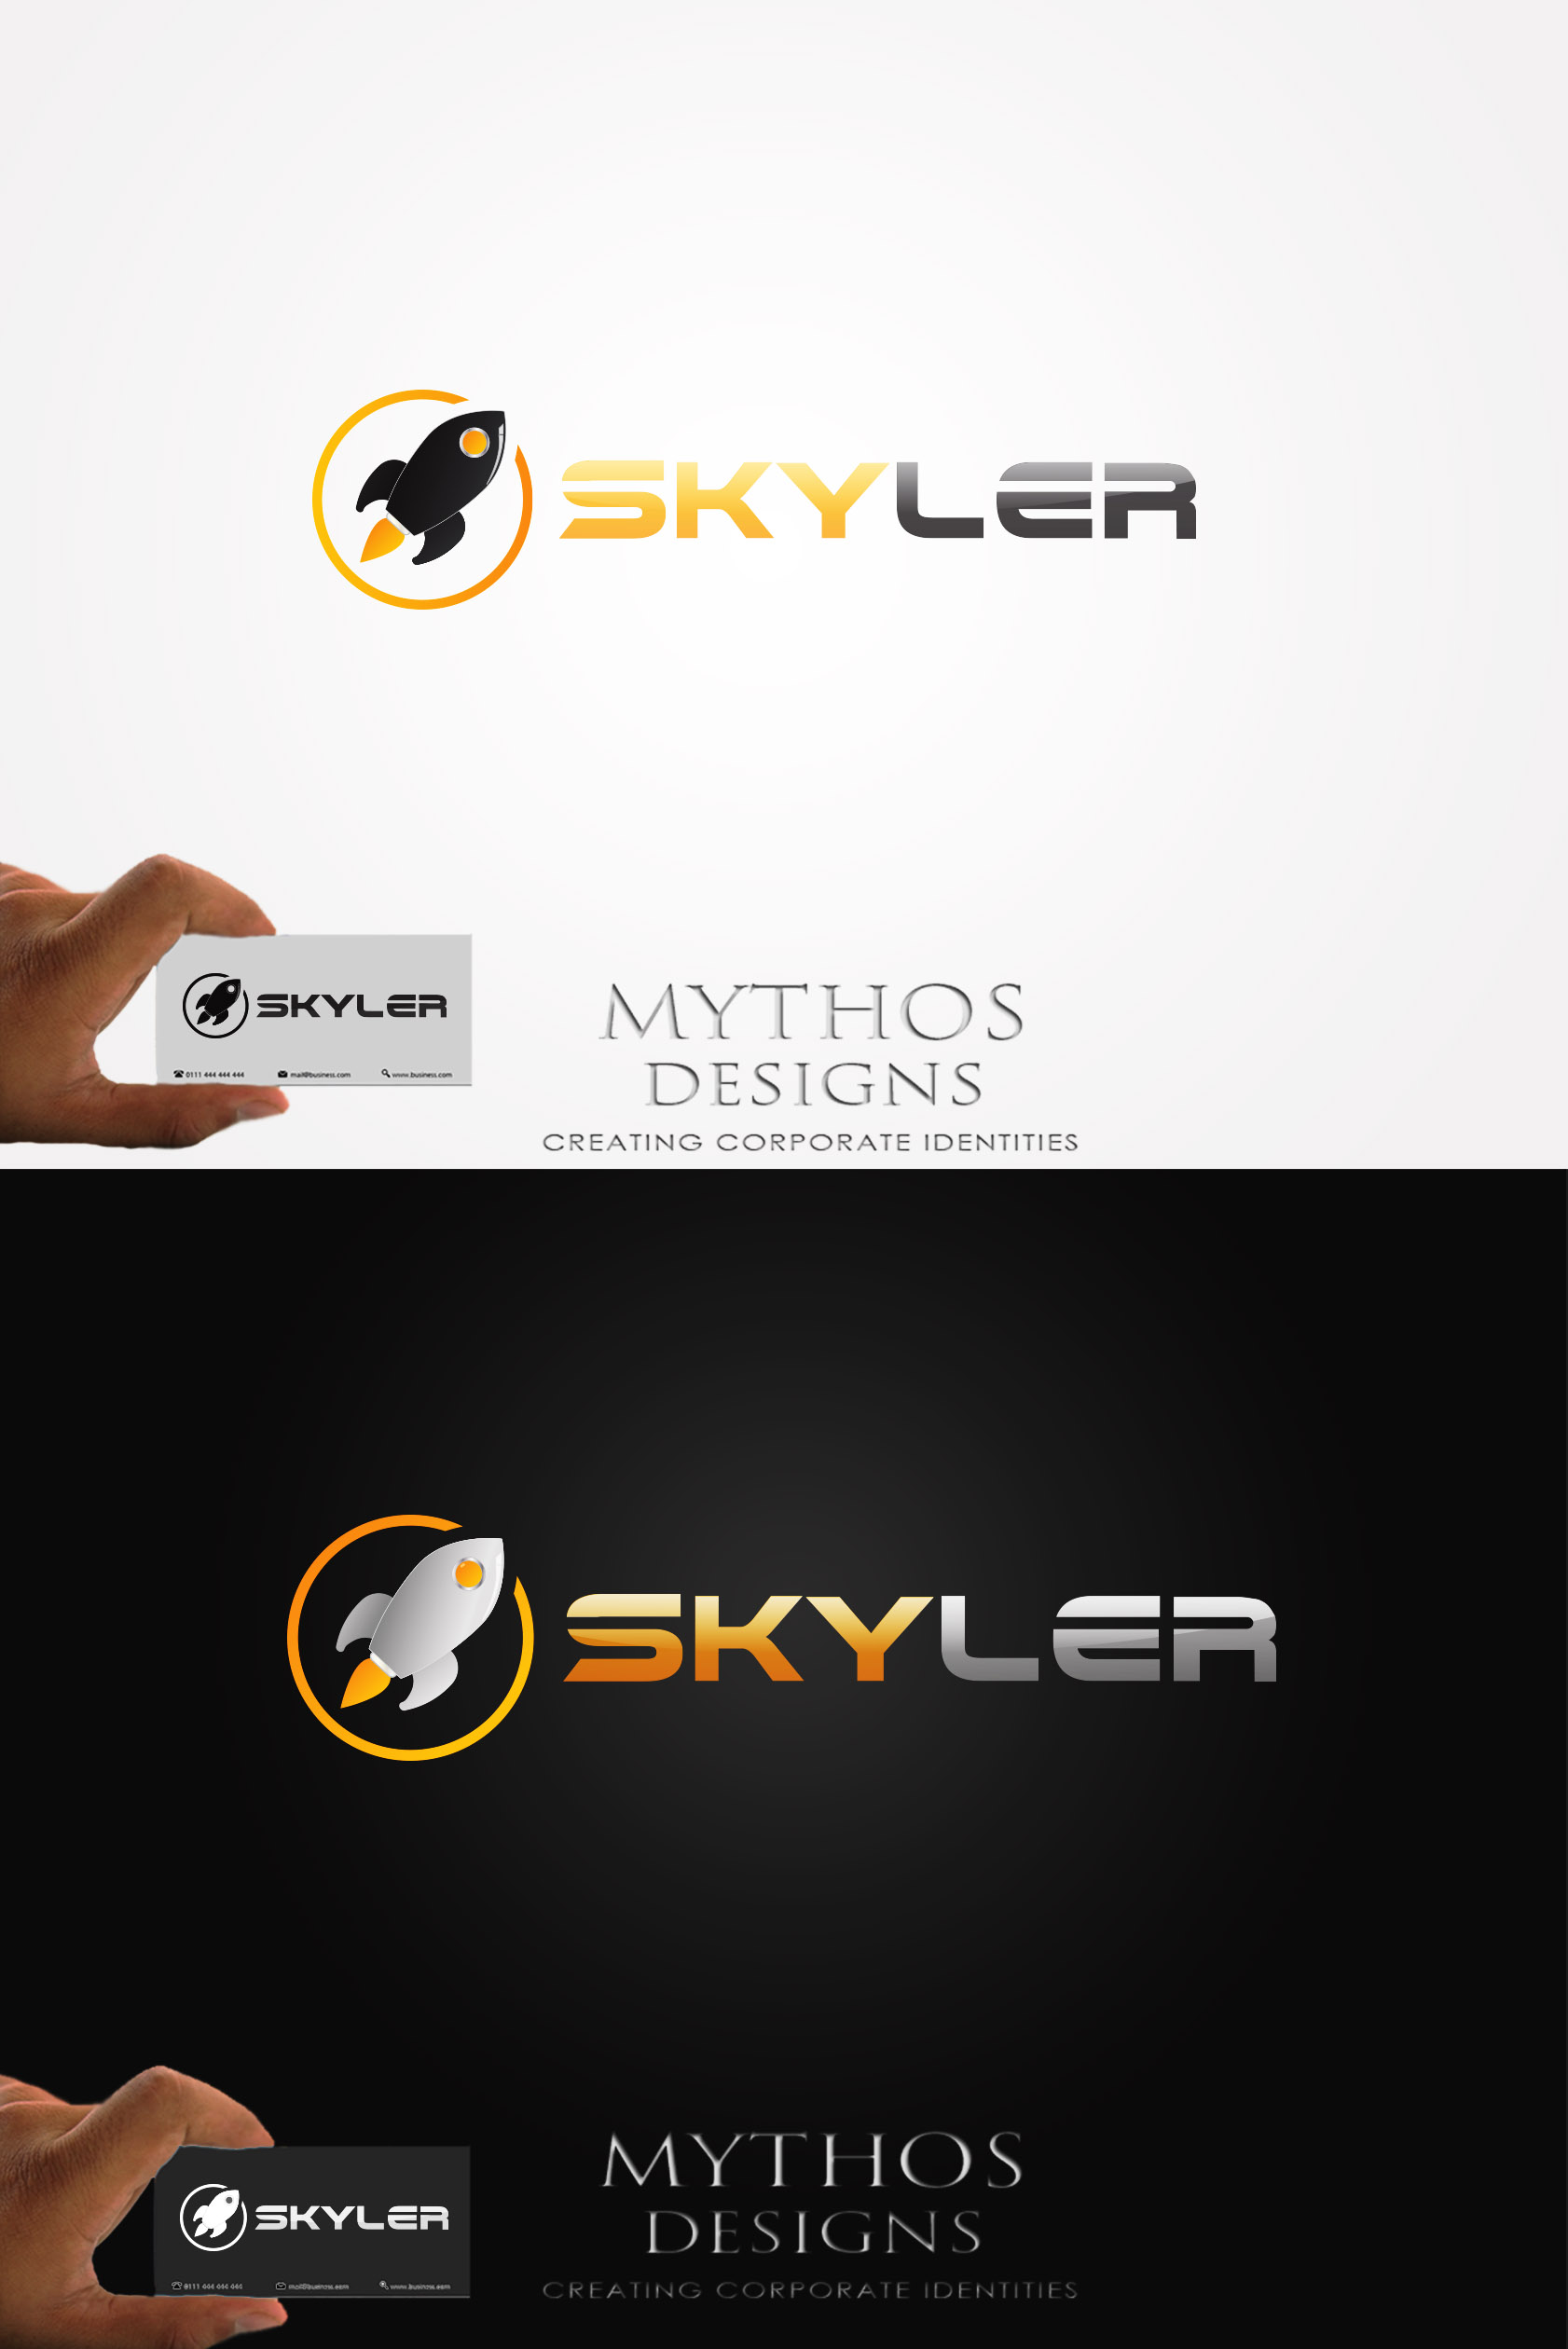 Logo Design by Mythos Designs - Entry No. 239 in the Logo Design Contest Artistic Logo Design for Skyler.Asia.